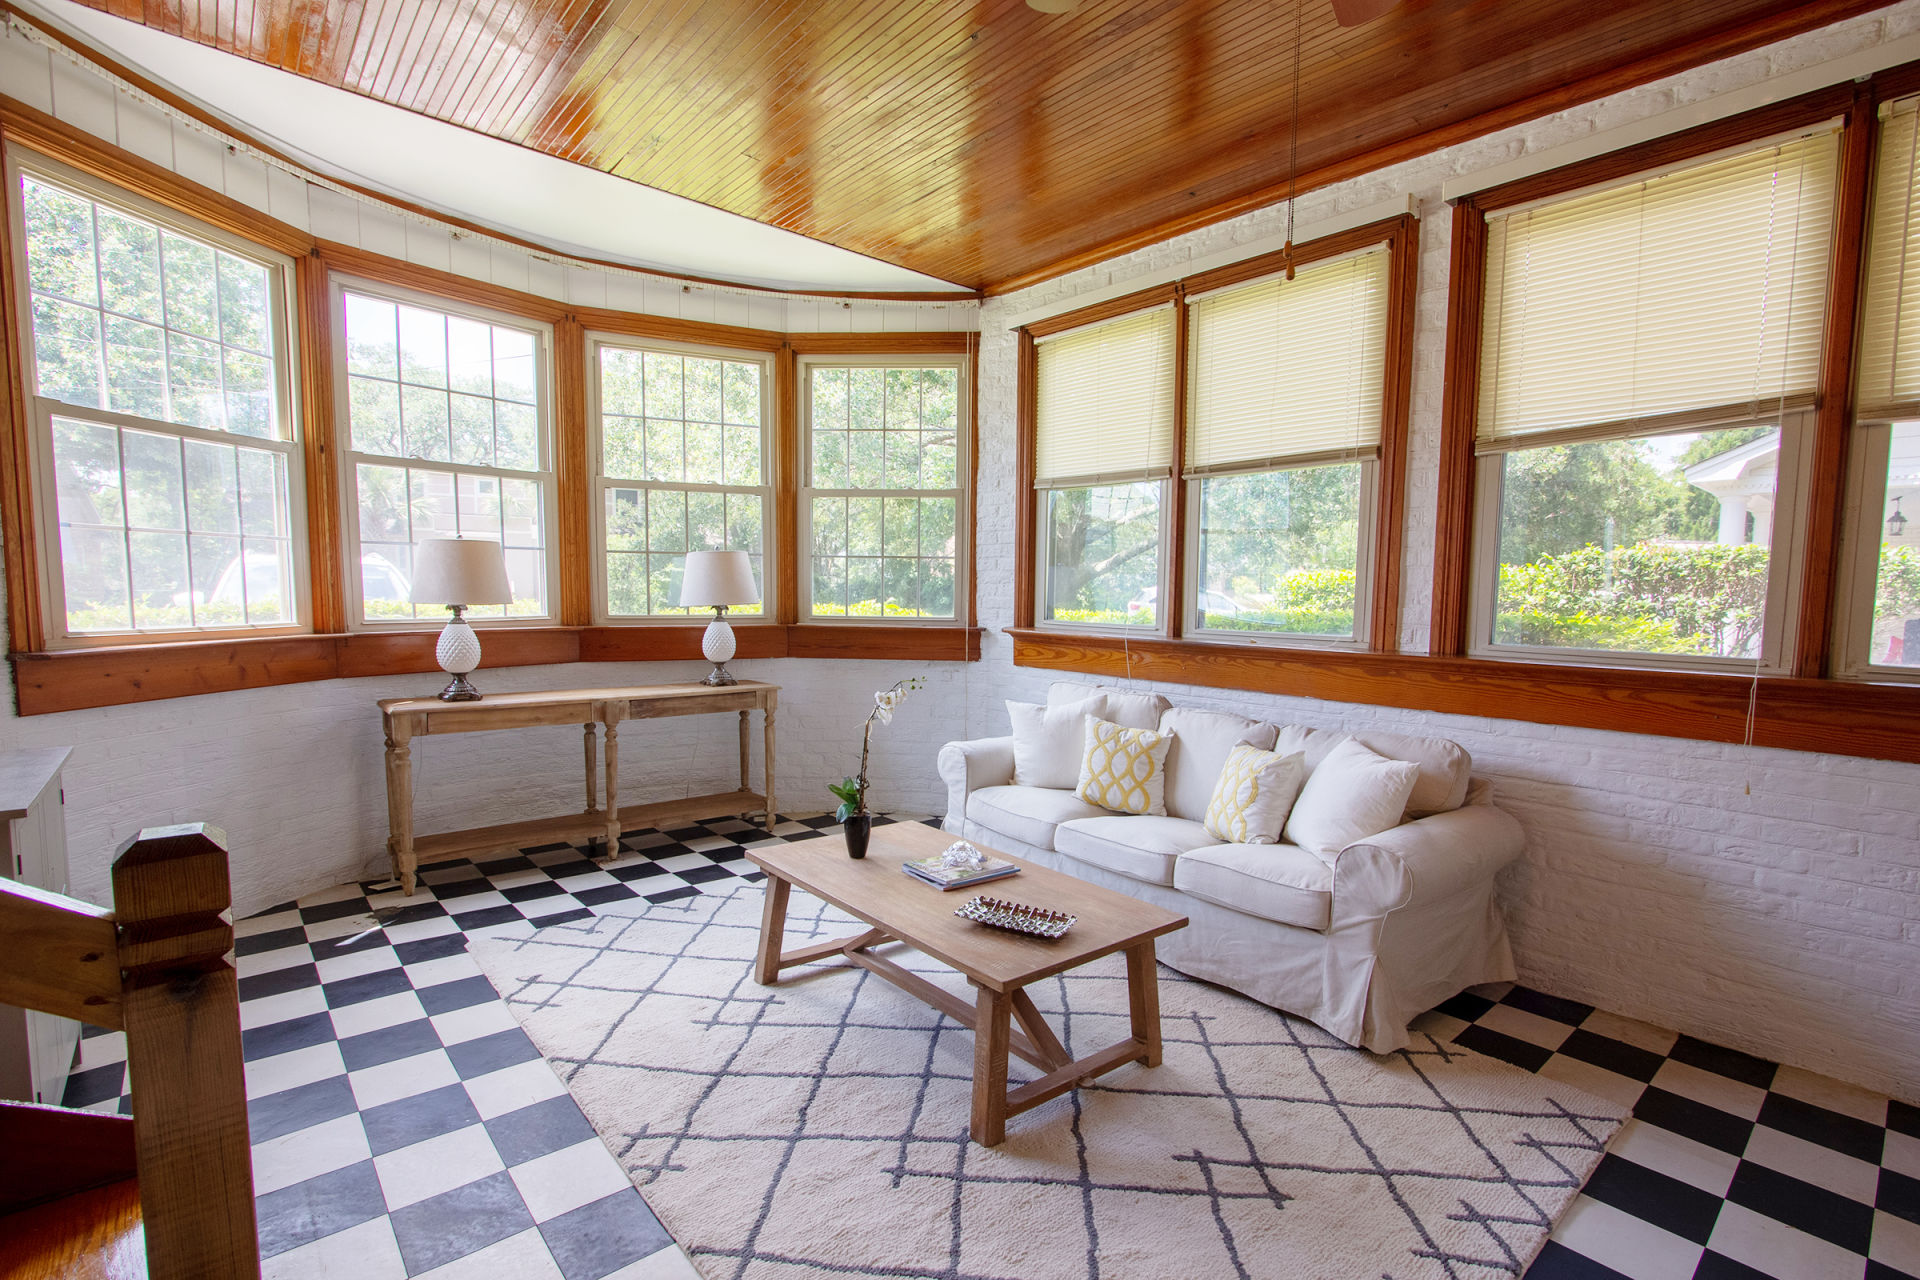 Home Staging: Is It Worth It?